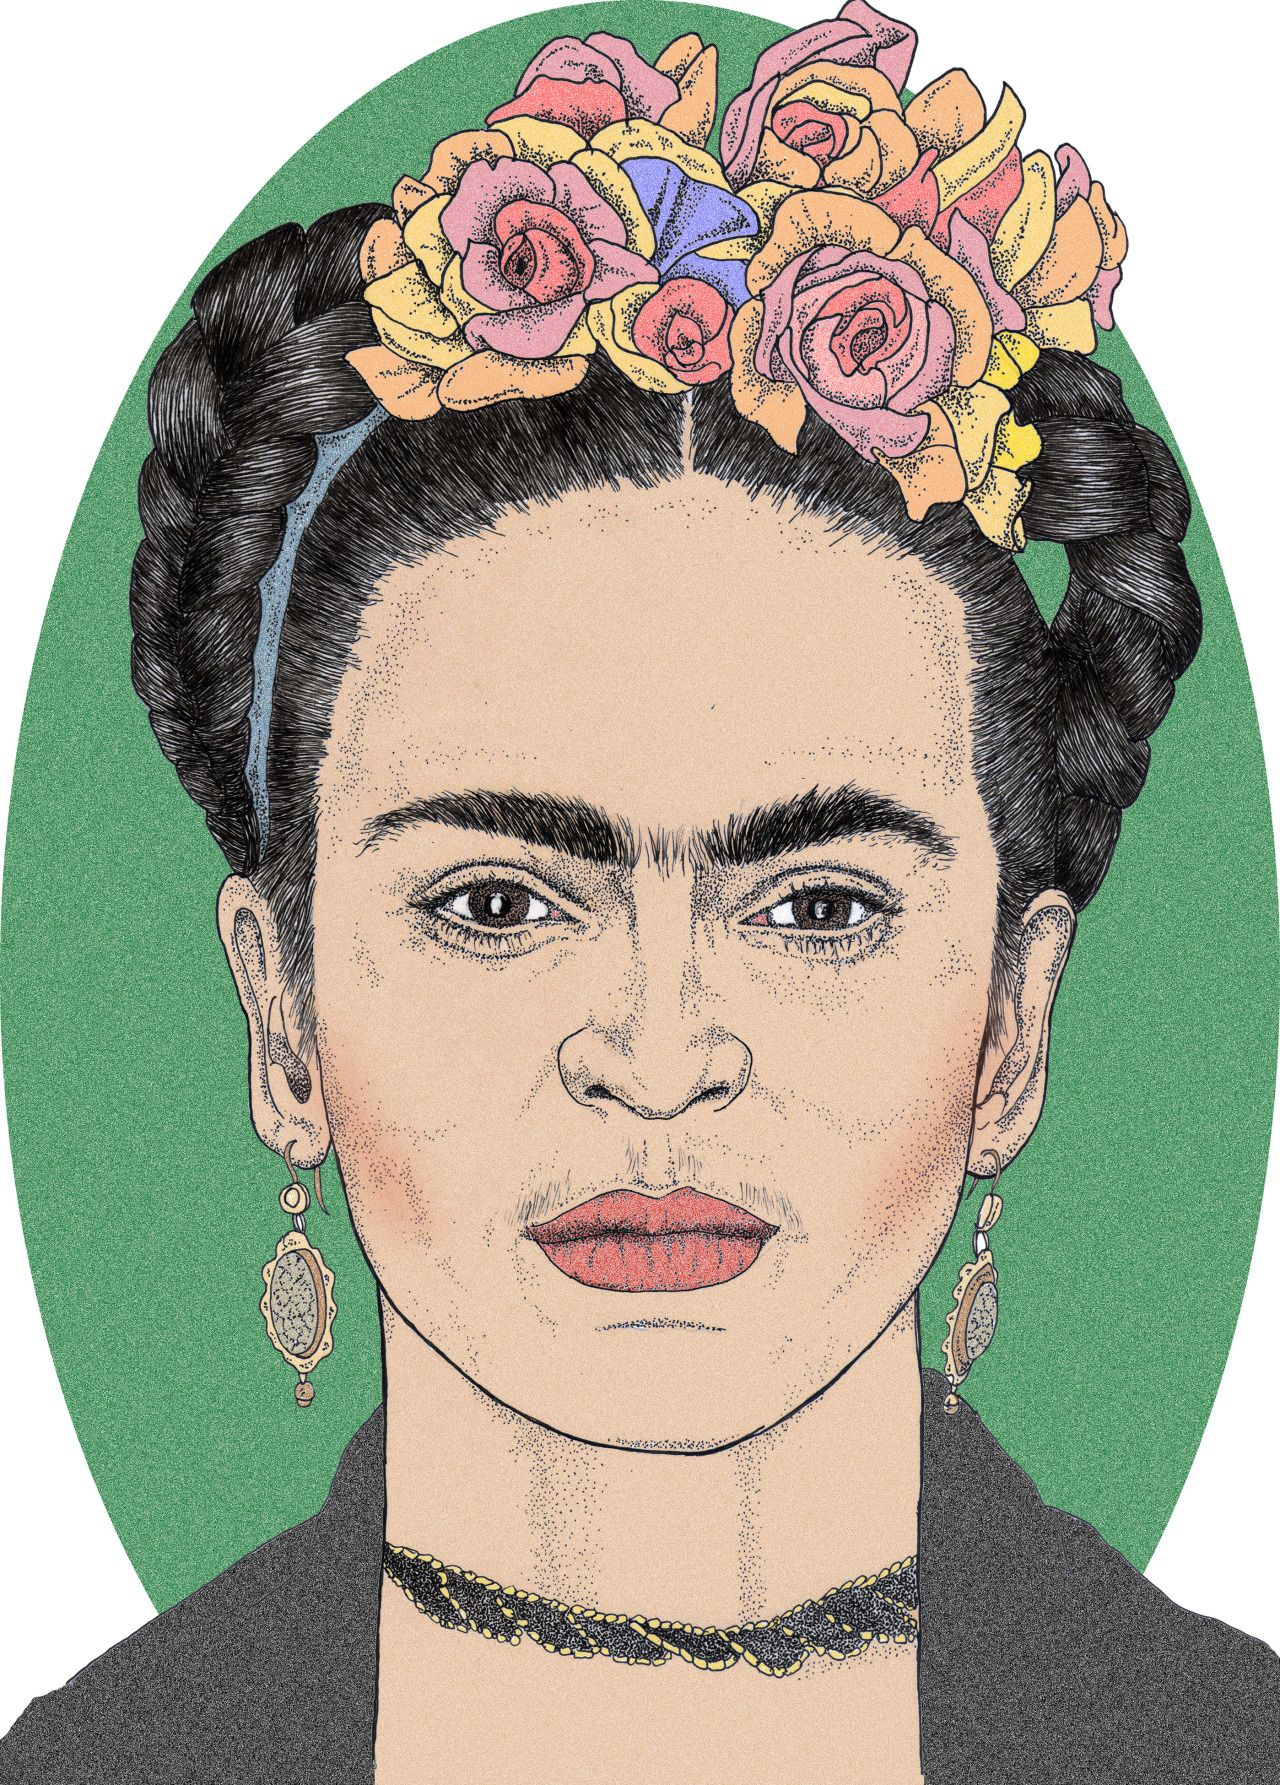 girl with braids flowers in her hair in hungarian inspired by frida kahlo easy coloring book for adults children retirees everyone by artist grace divine hungarian edition